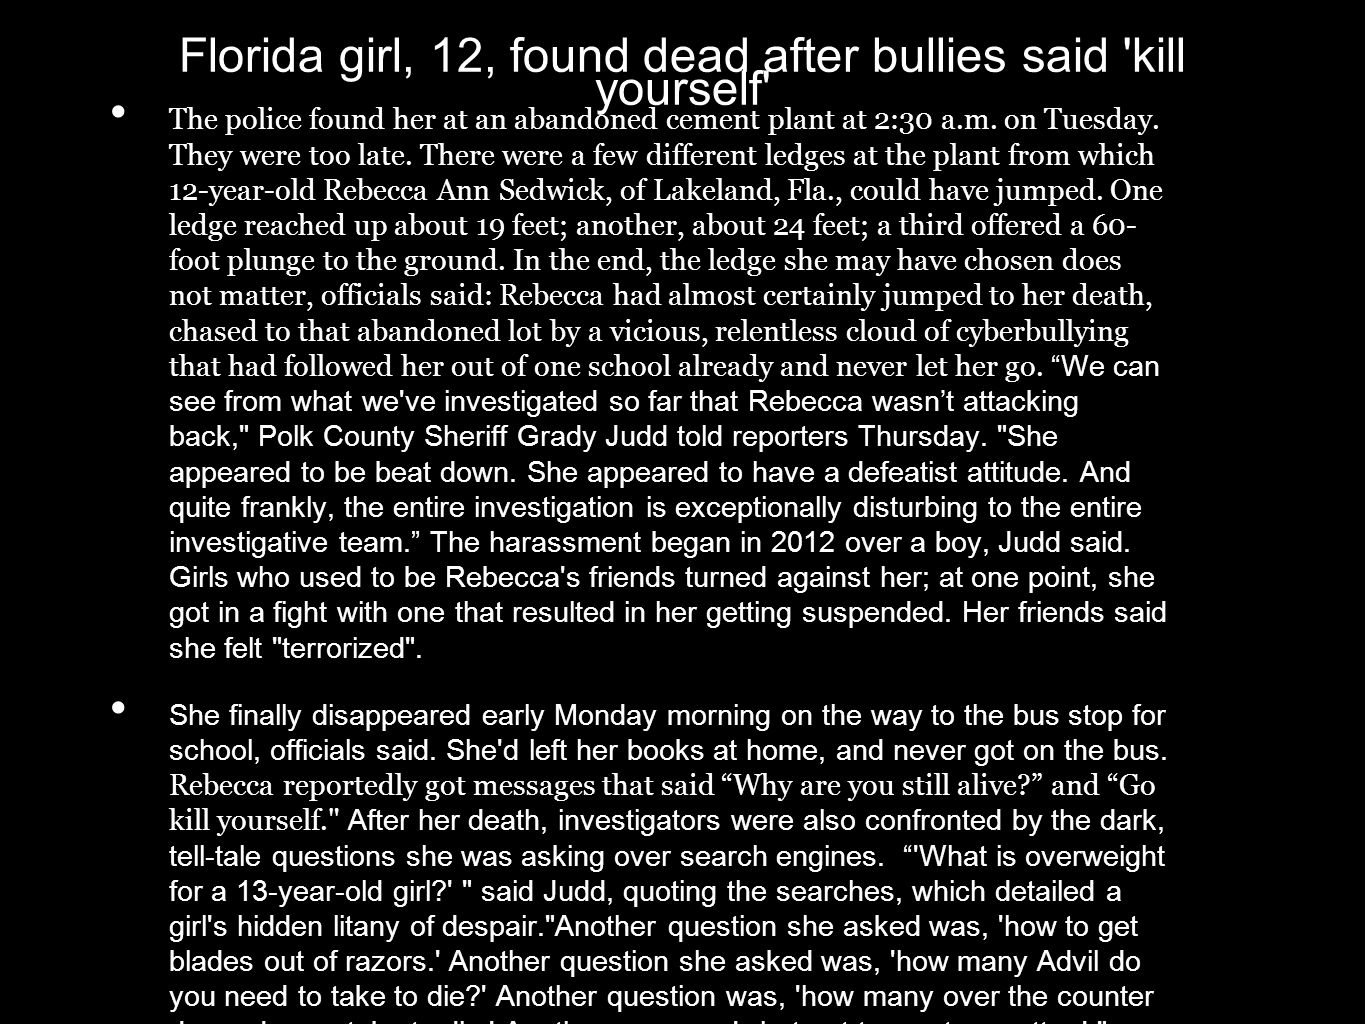 Florida girl, 12, found dead after bullies said 'kill yourself' The police found her at an abandoned cement plant at 2:30 a.m. on Tuesday. They were t